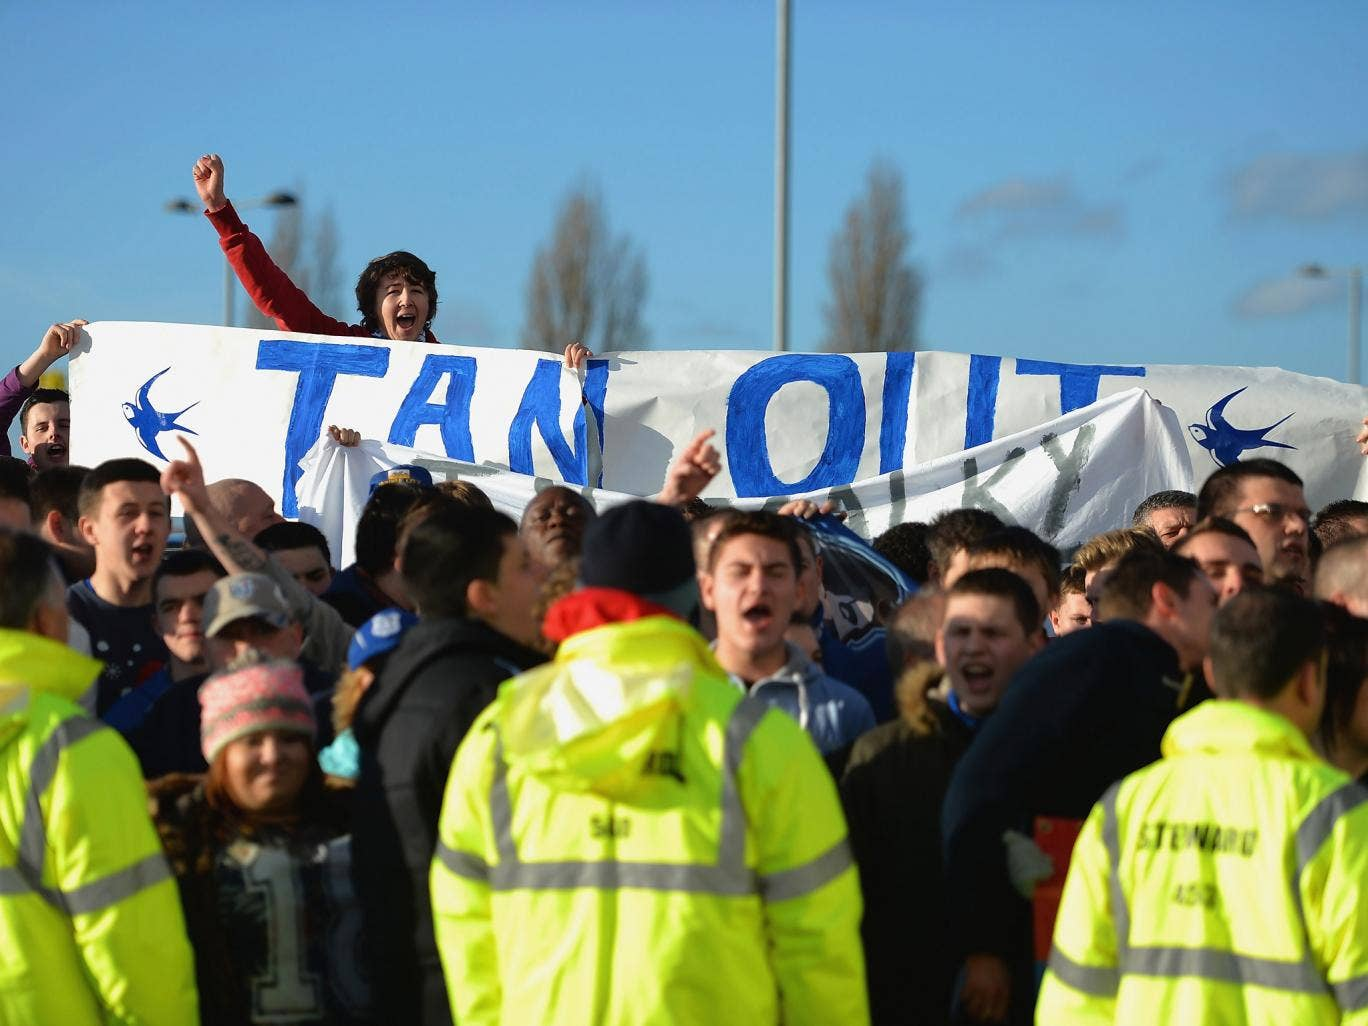 Cardiff City fans protest against club owner Vincent Tan following the furore surrounding the future of manager Malky Mackay